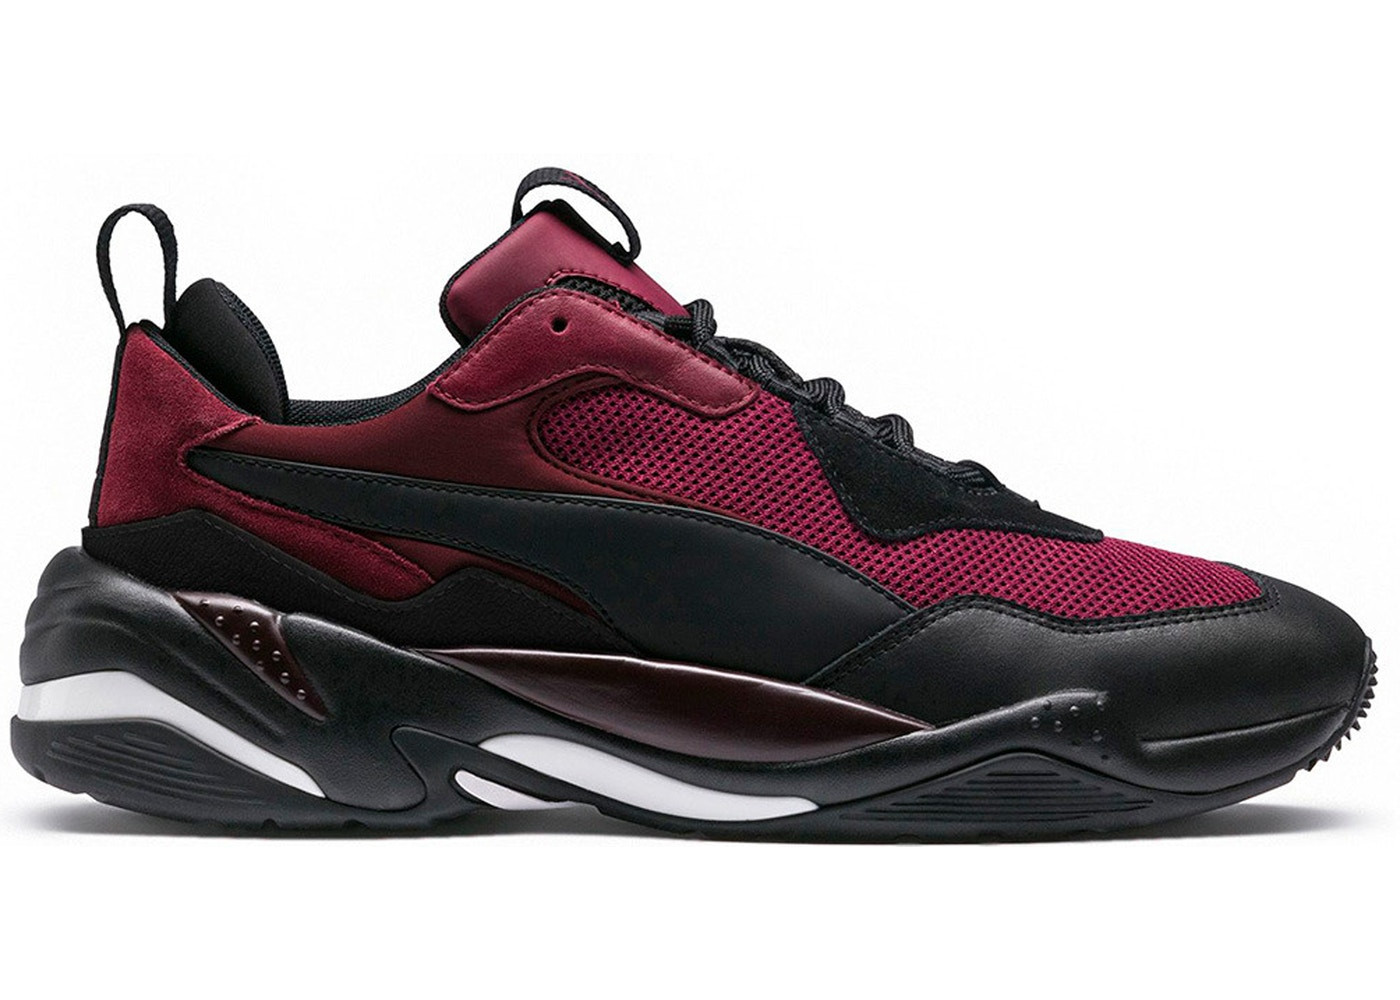 85583fb3735 Puma Thunder Spectra Burgundy Black - 367516-03